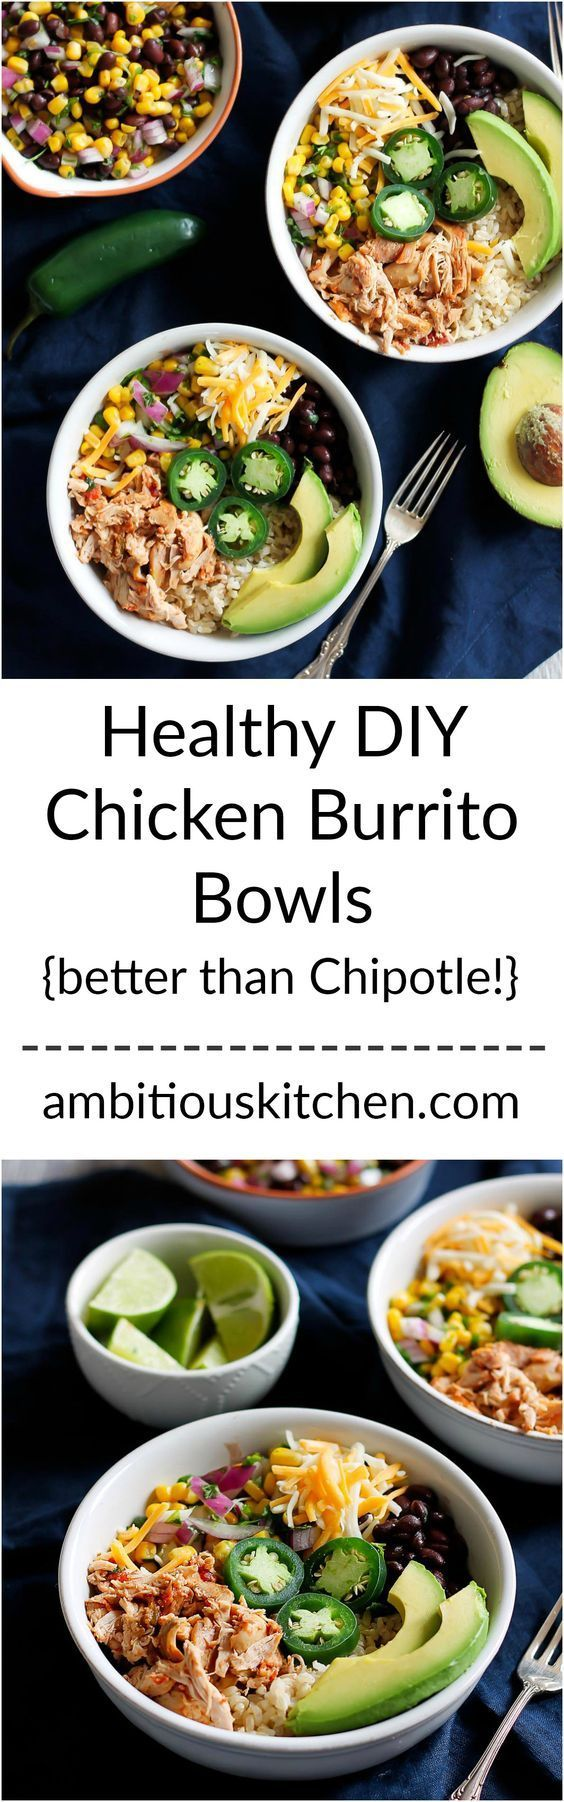 than Chipotle DIY Chicken Burrito Bowls that are awesome for clean eating and healthy meal prep. Cheap & easy to make. Chicken can be made in the slow cooker too!